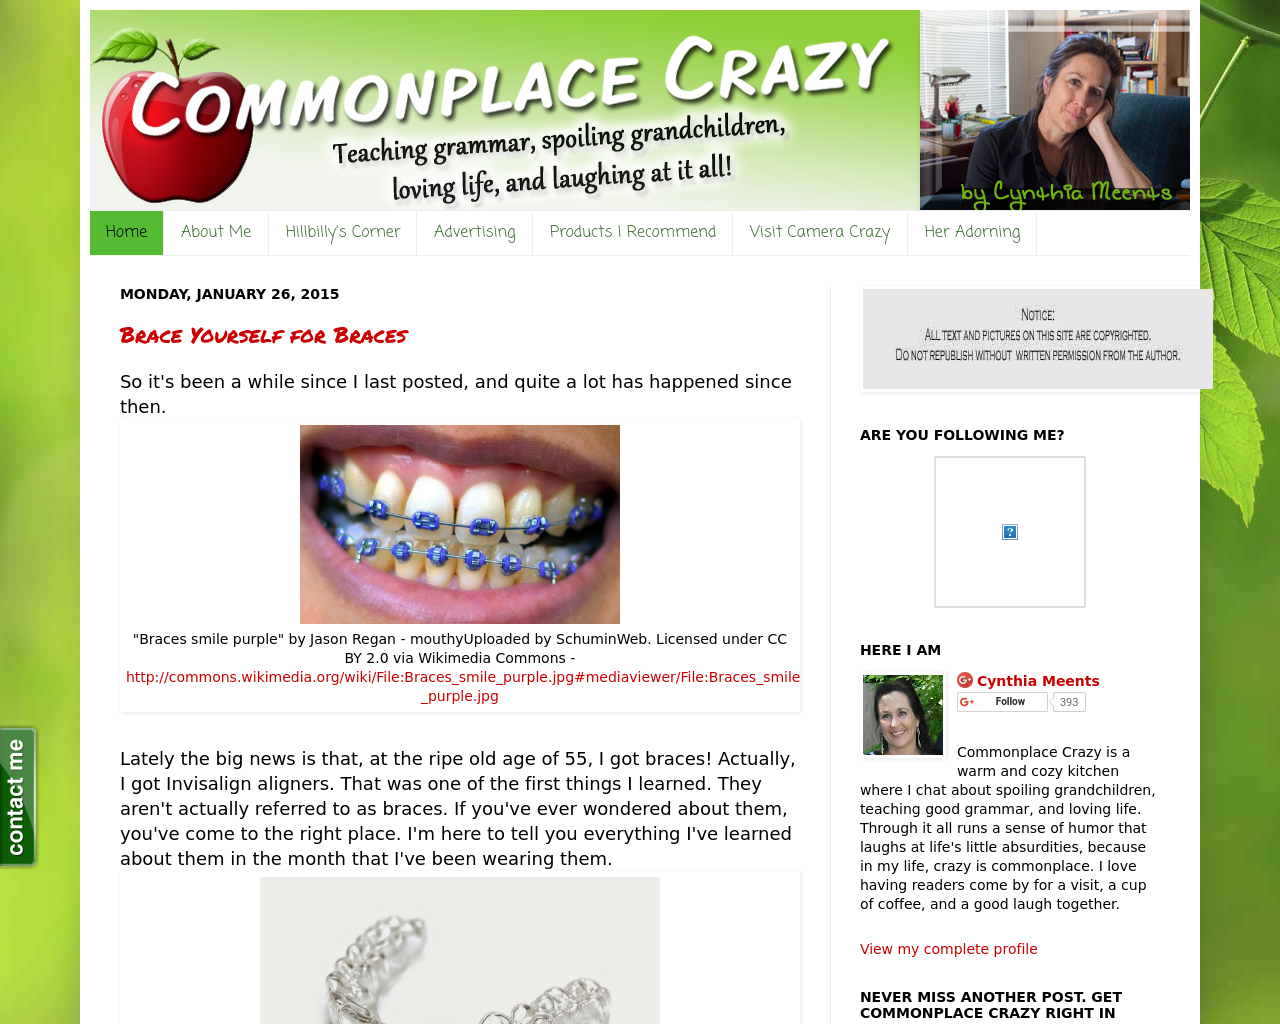 Commonplace-Crazy-Advertising-Reviews-Pricing